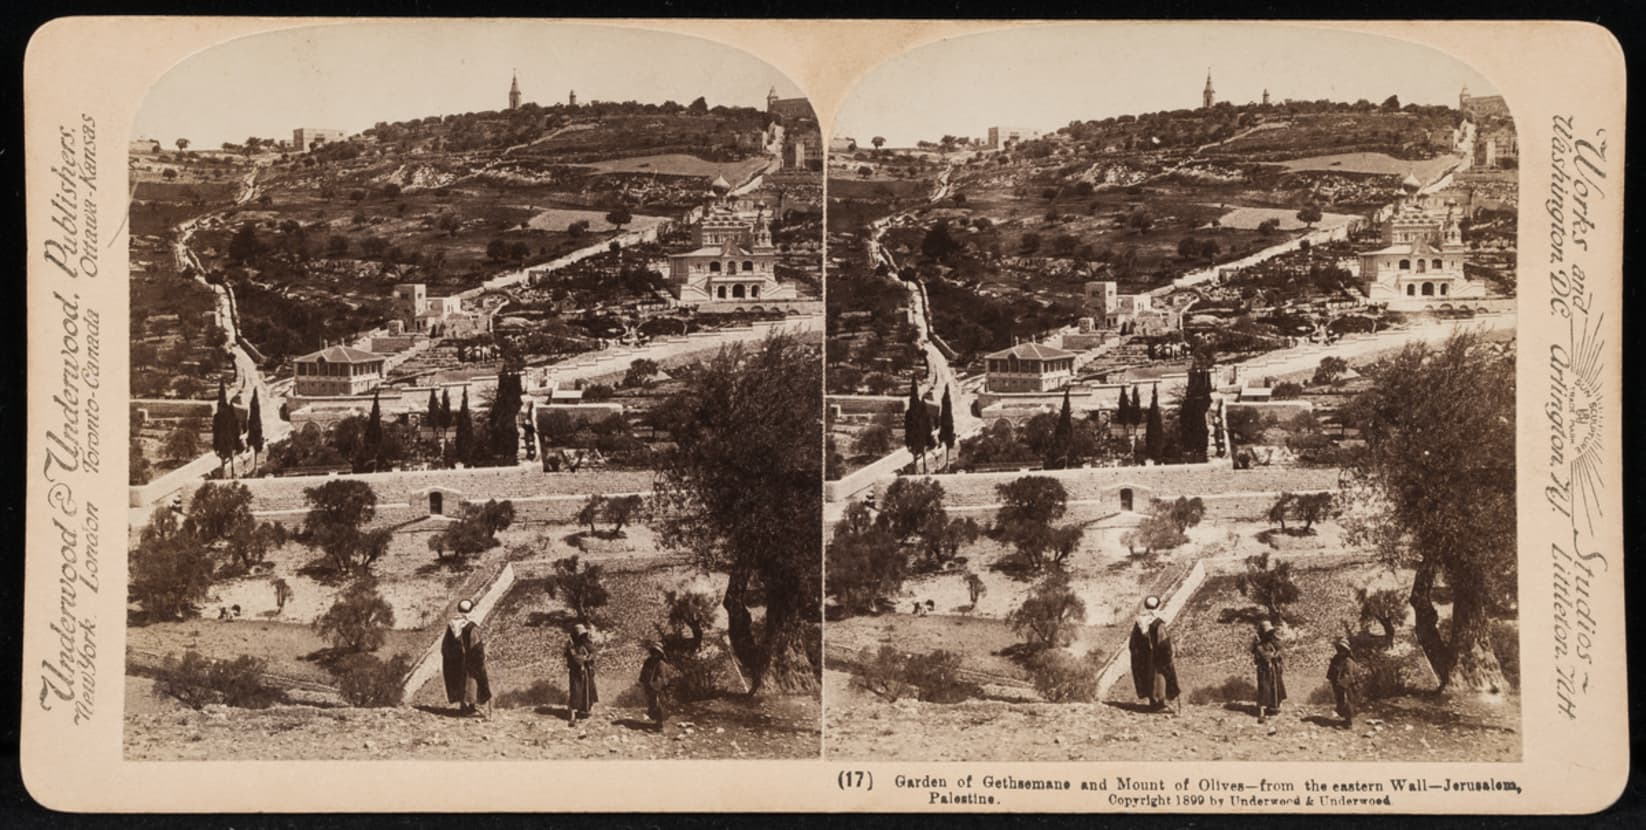 The Jewish Museum - Collection - Garden of Gethsemane and Mount of ...